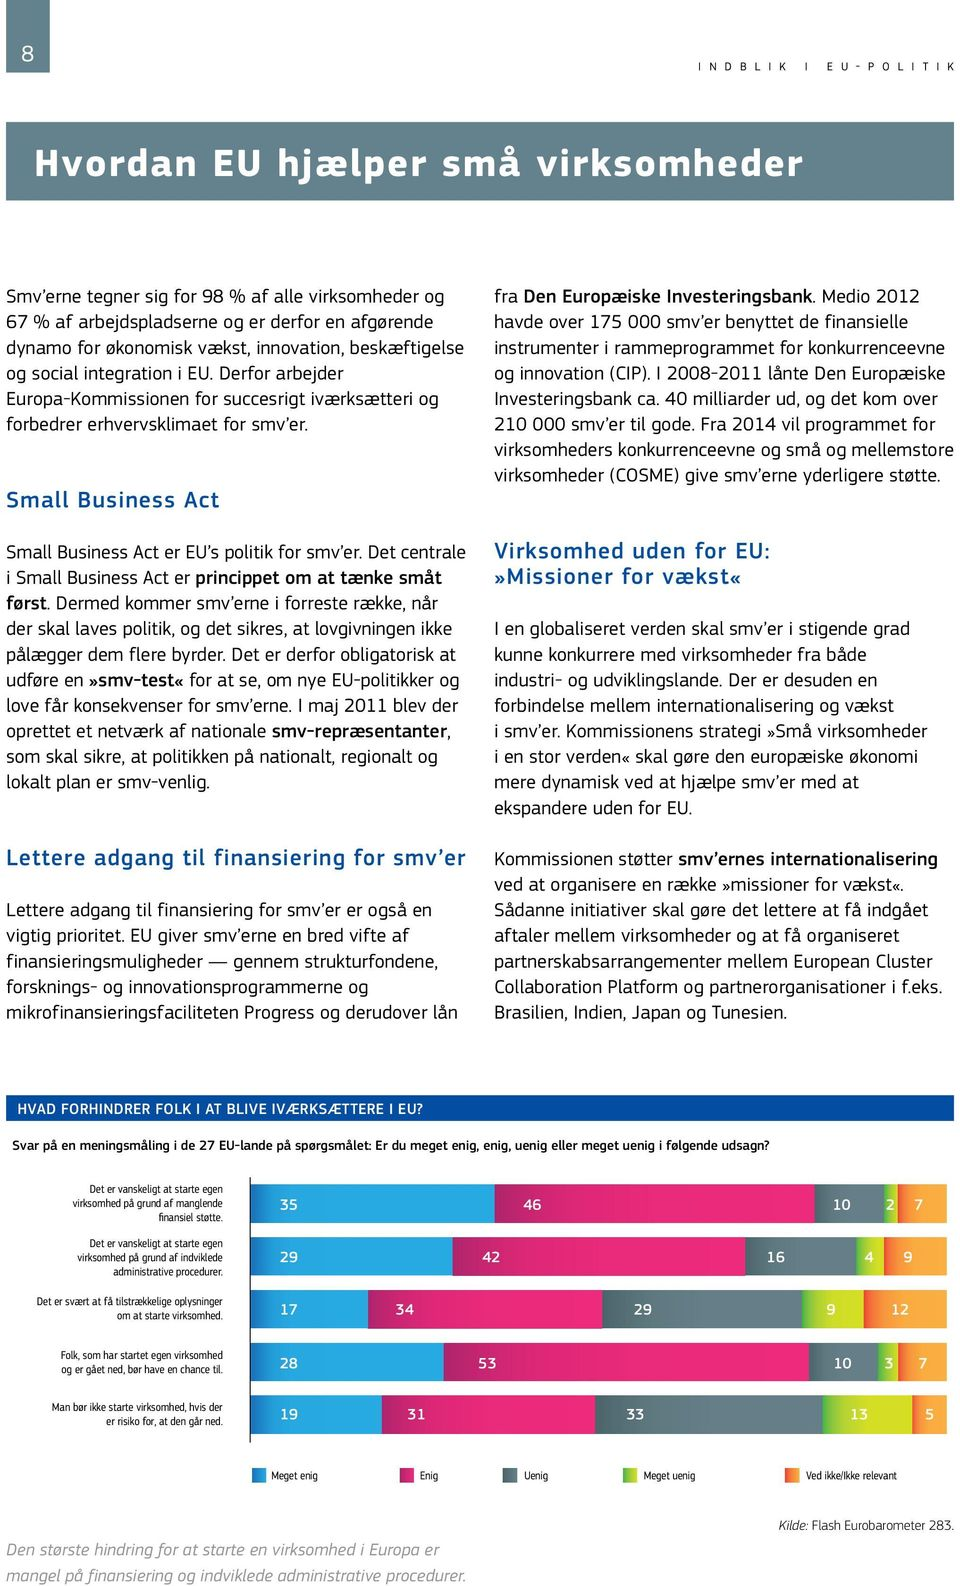 Small Business Act Small Business Act er EU s politik for smv er. Det centrale i Small Business Act er princippet om at tænke småt først.